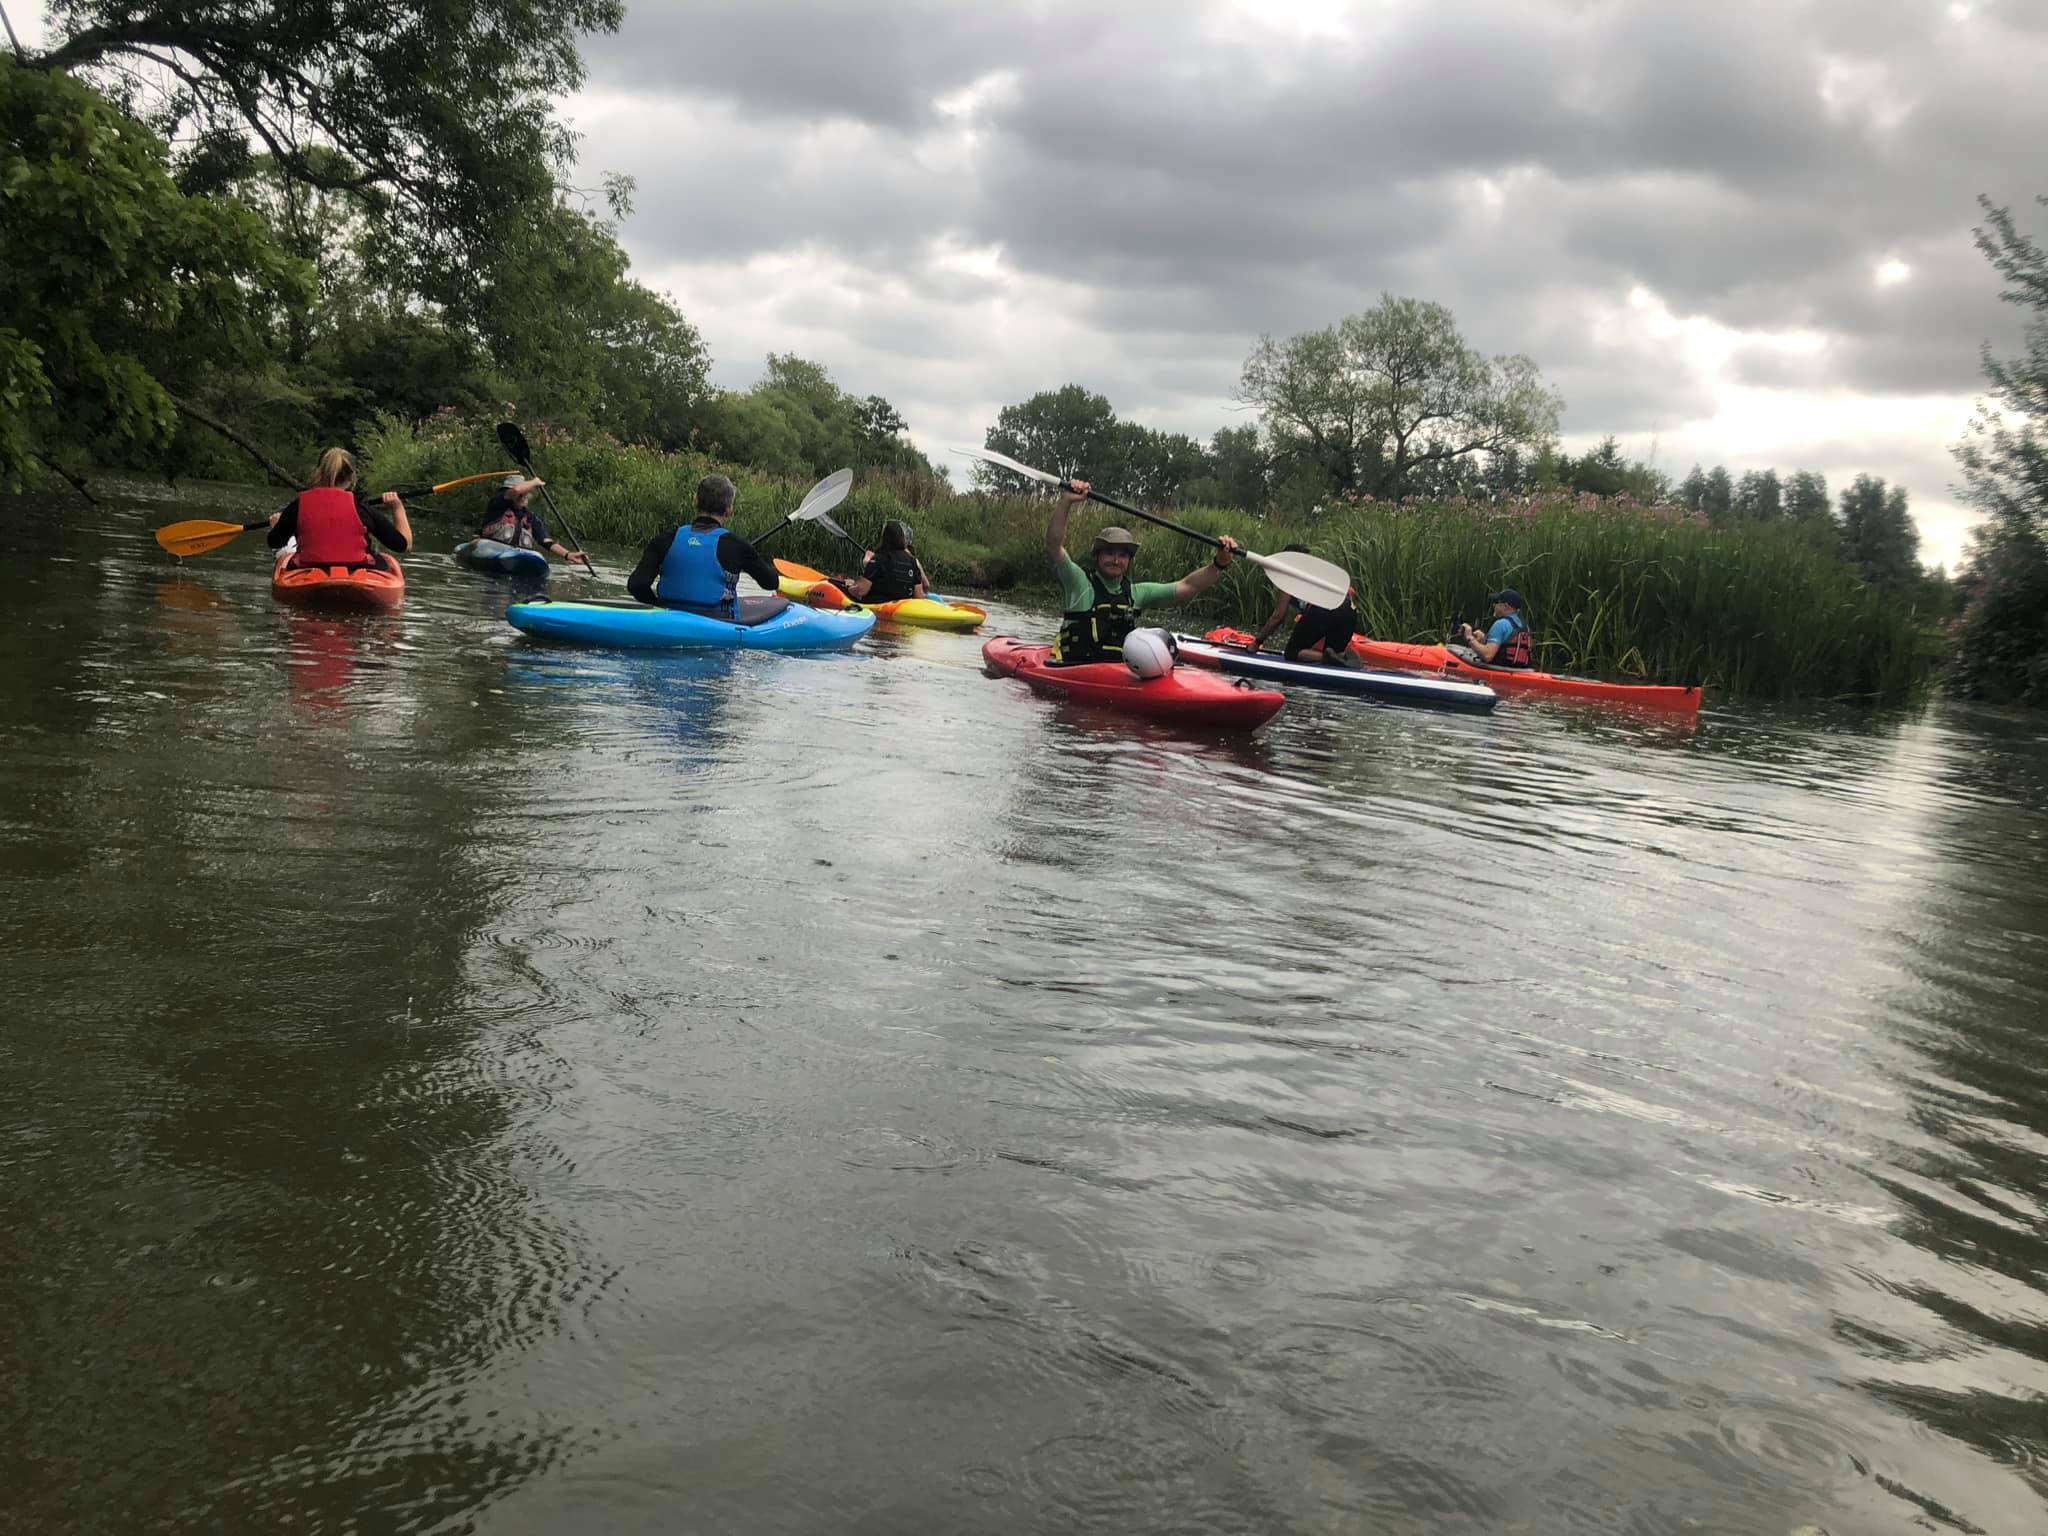 Barcombe Mills to Isfield weir return